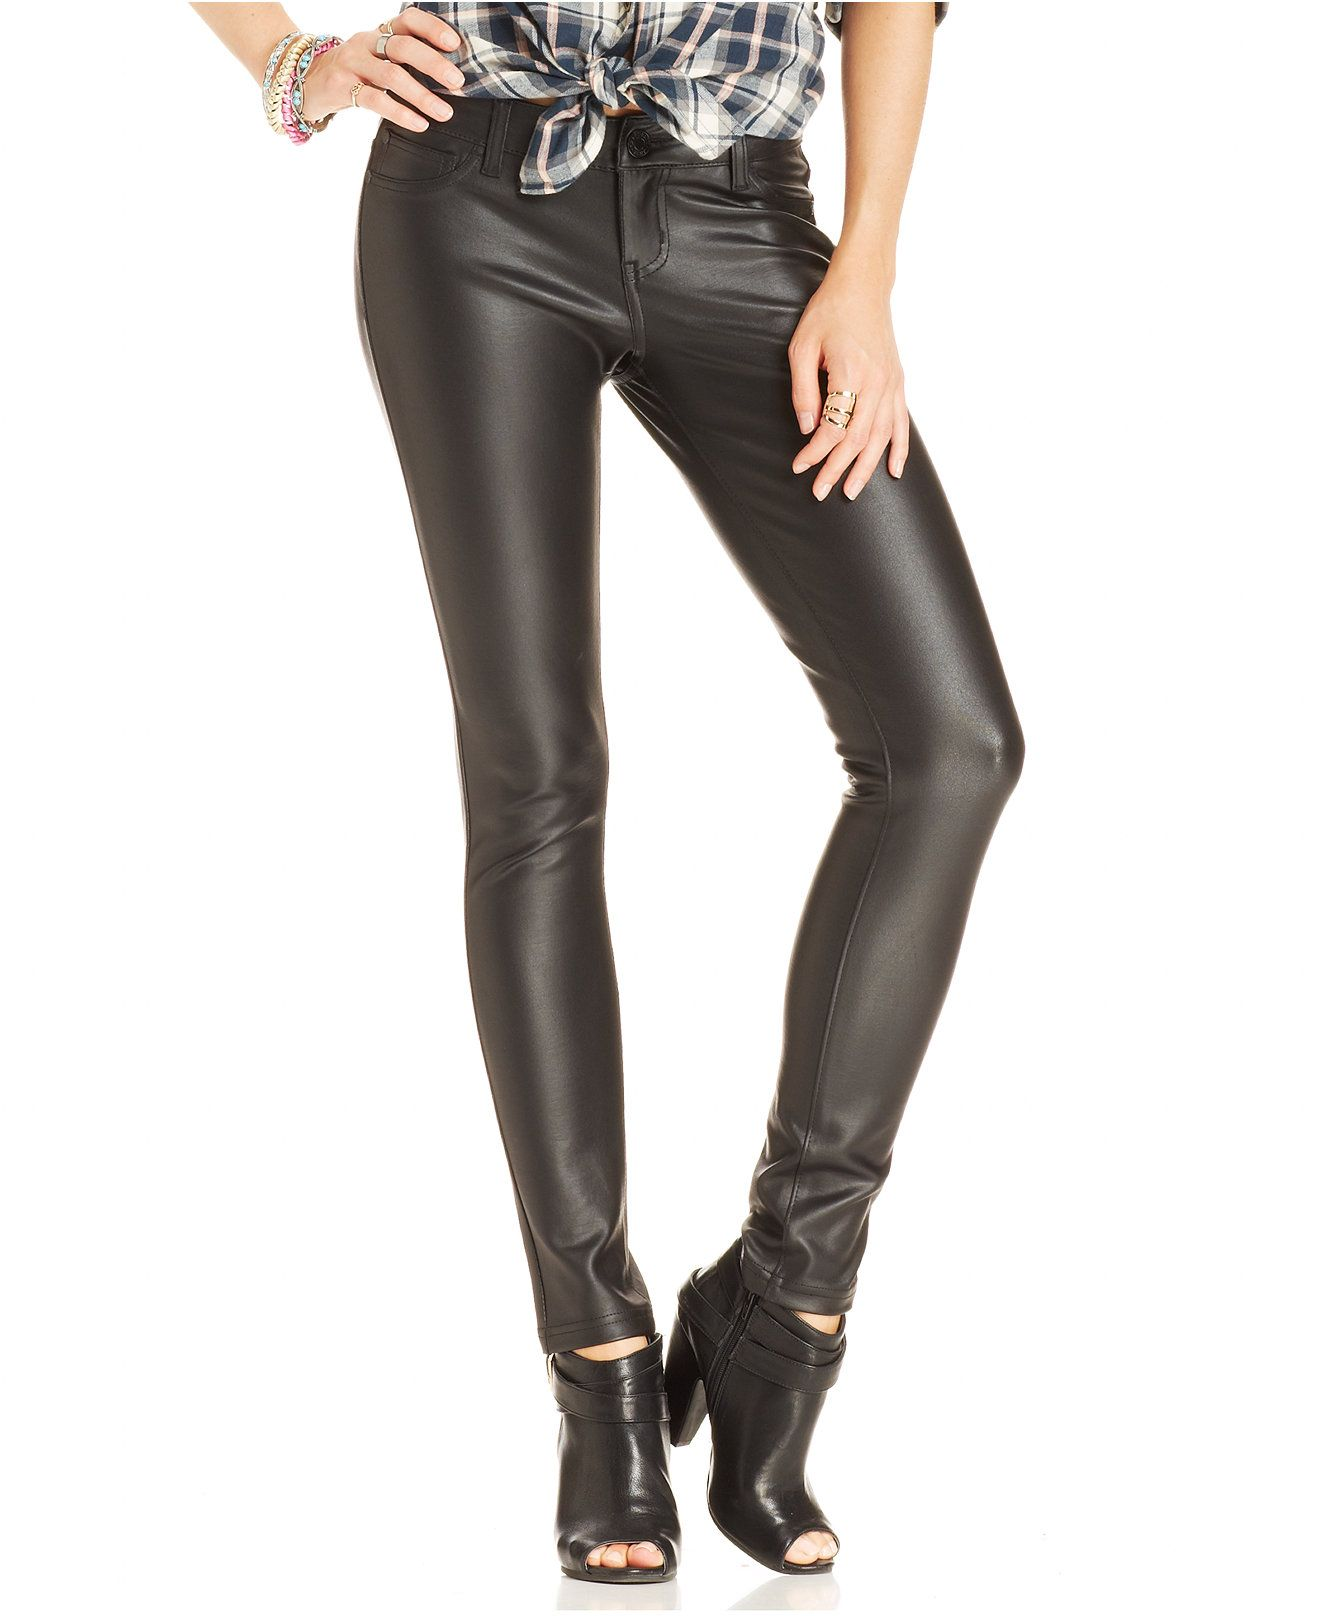 46274d6e6e006 Celebrity Pink Jeans Juniors' Faux-Leather Skinny Pants - Juniors Leggings  & Pants - Macy's ORDERED size 5 10/6